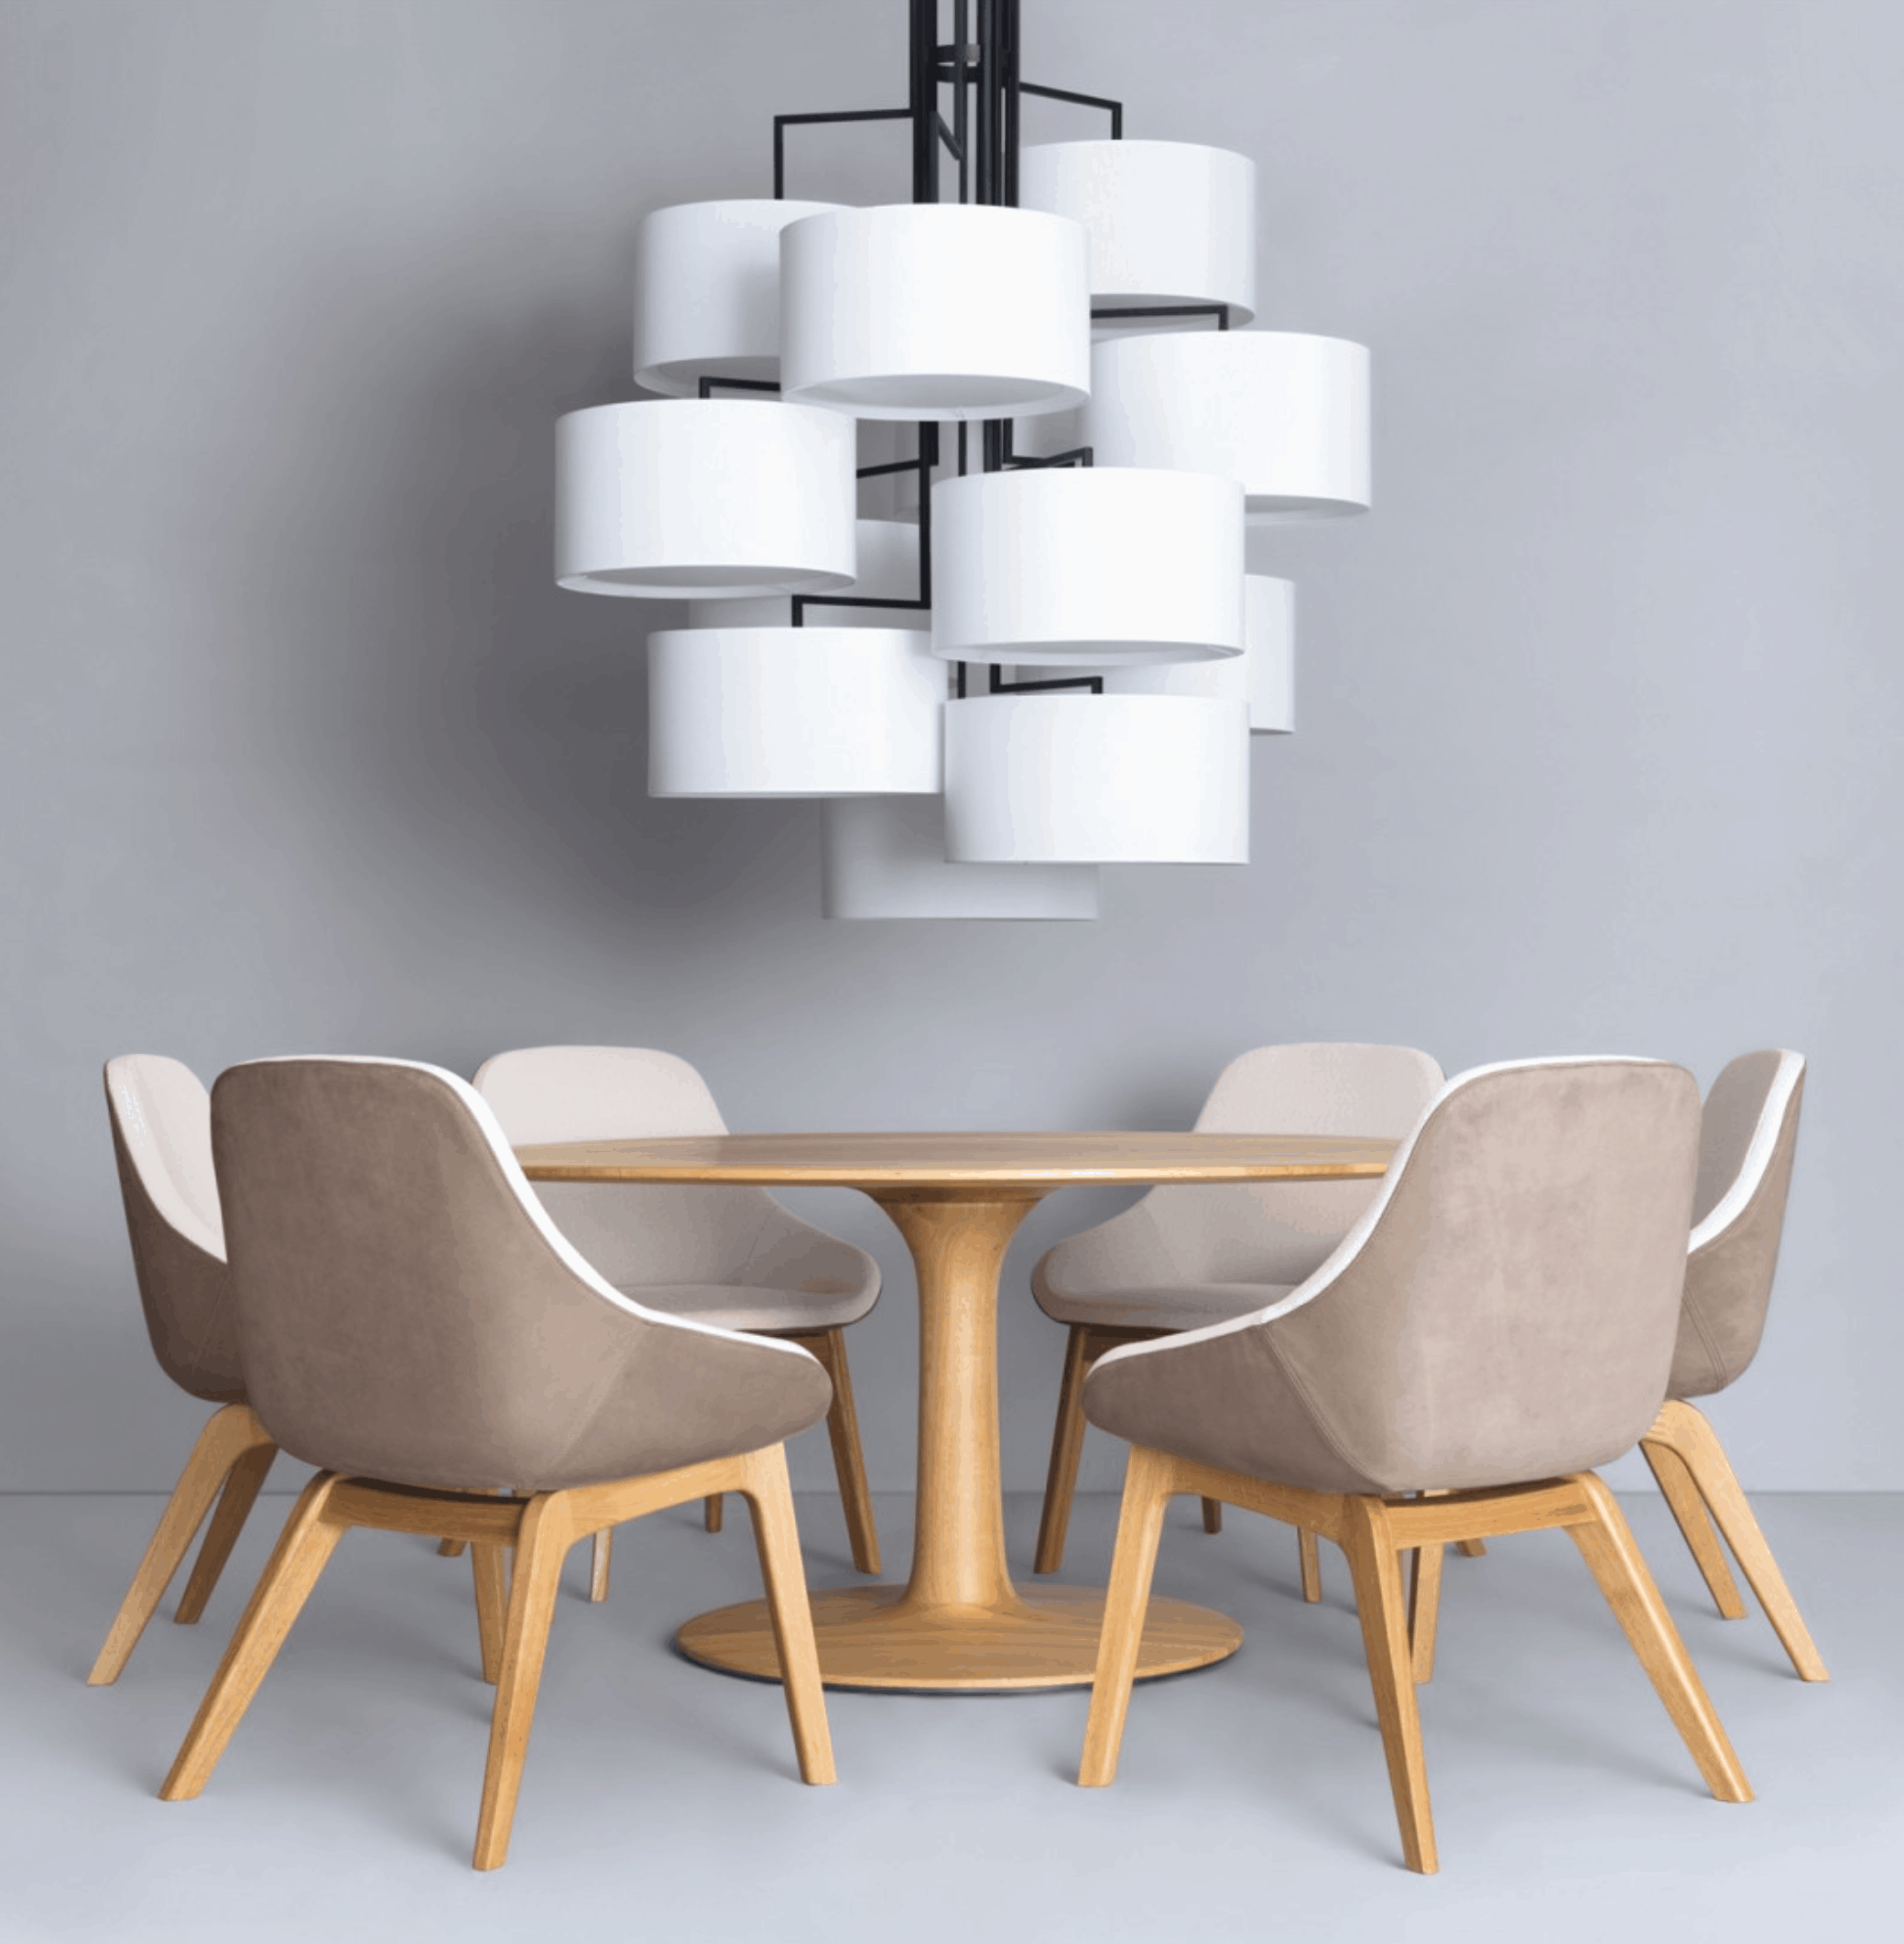 art deco light fixtures with white shades above modern table with gray chairs, wood grain legs